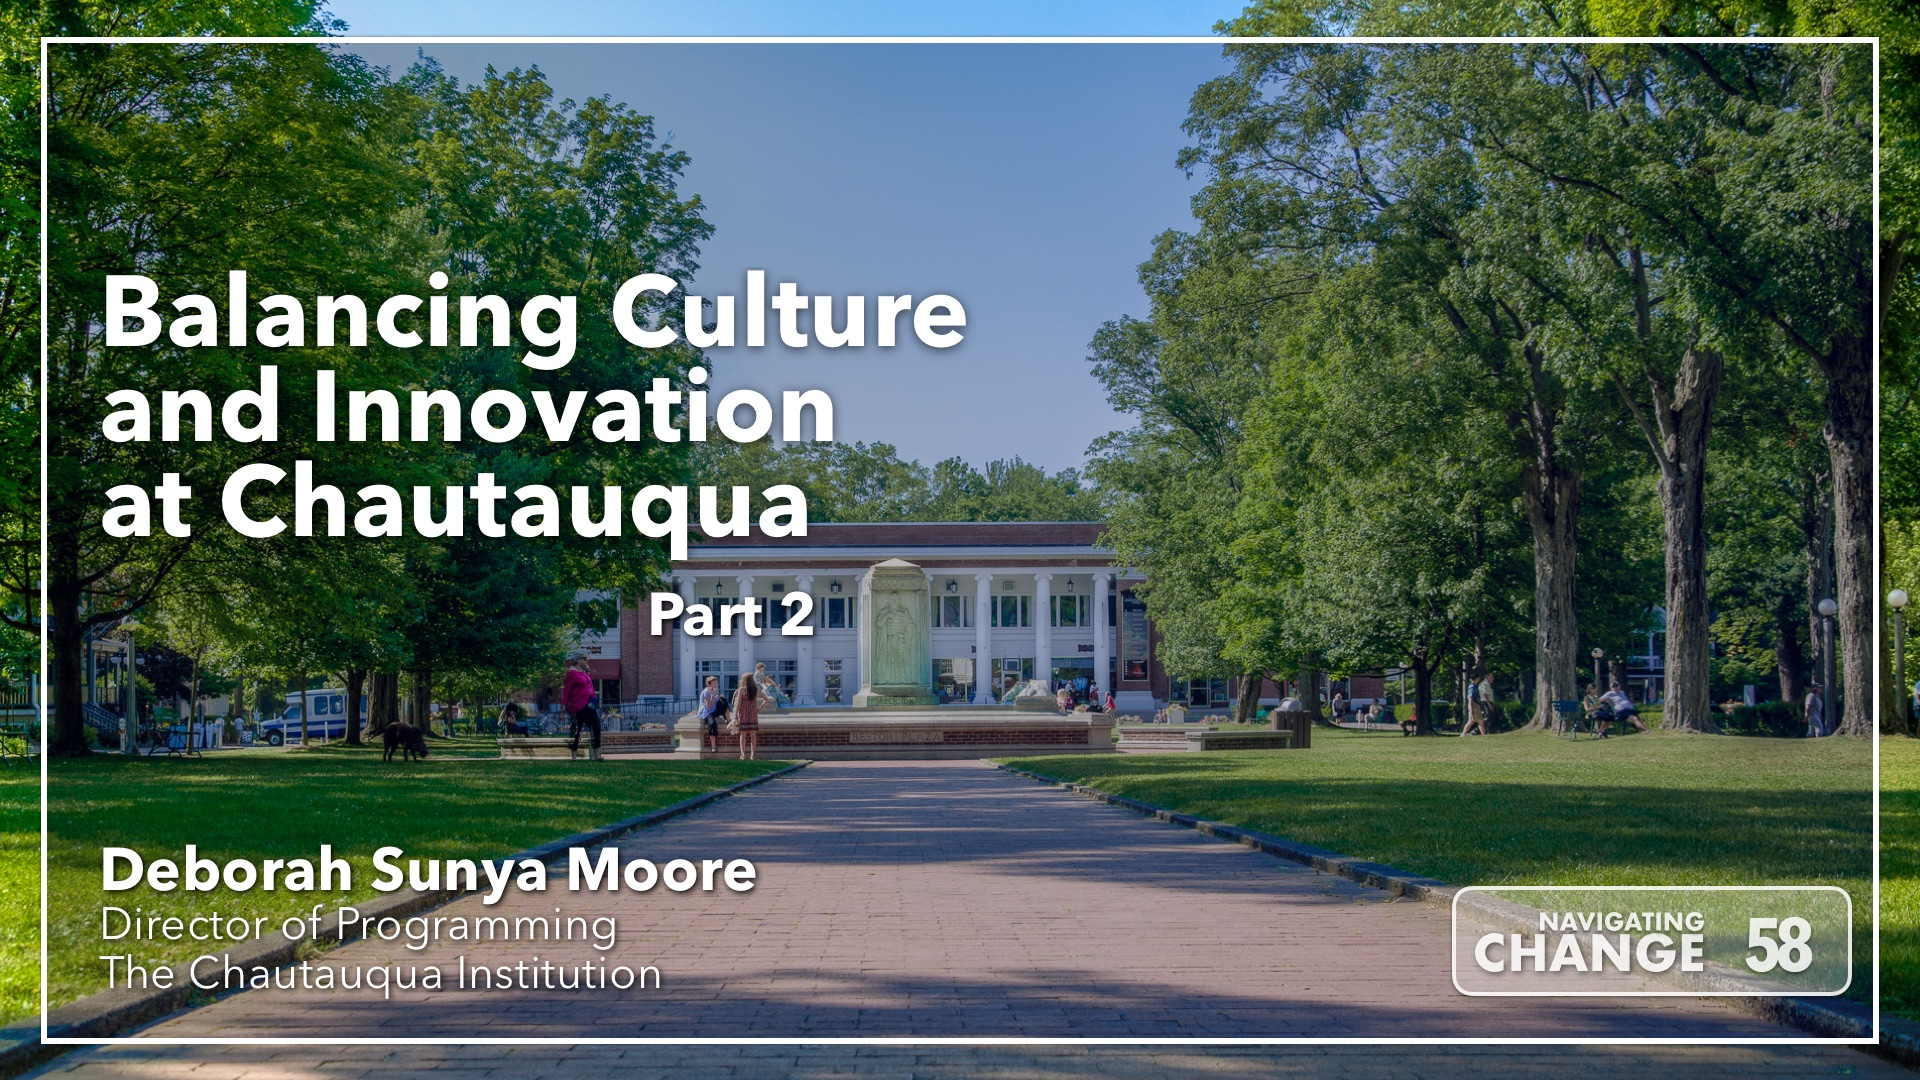 Listen to Balancing Culture and Innovation at Chautauqua with Deborah Sunya Moore on Navigating Change The Education Podcast